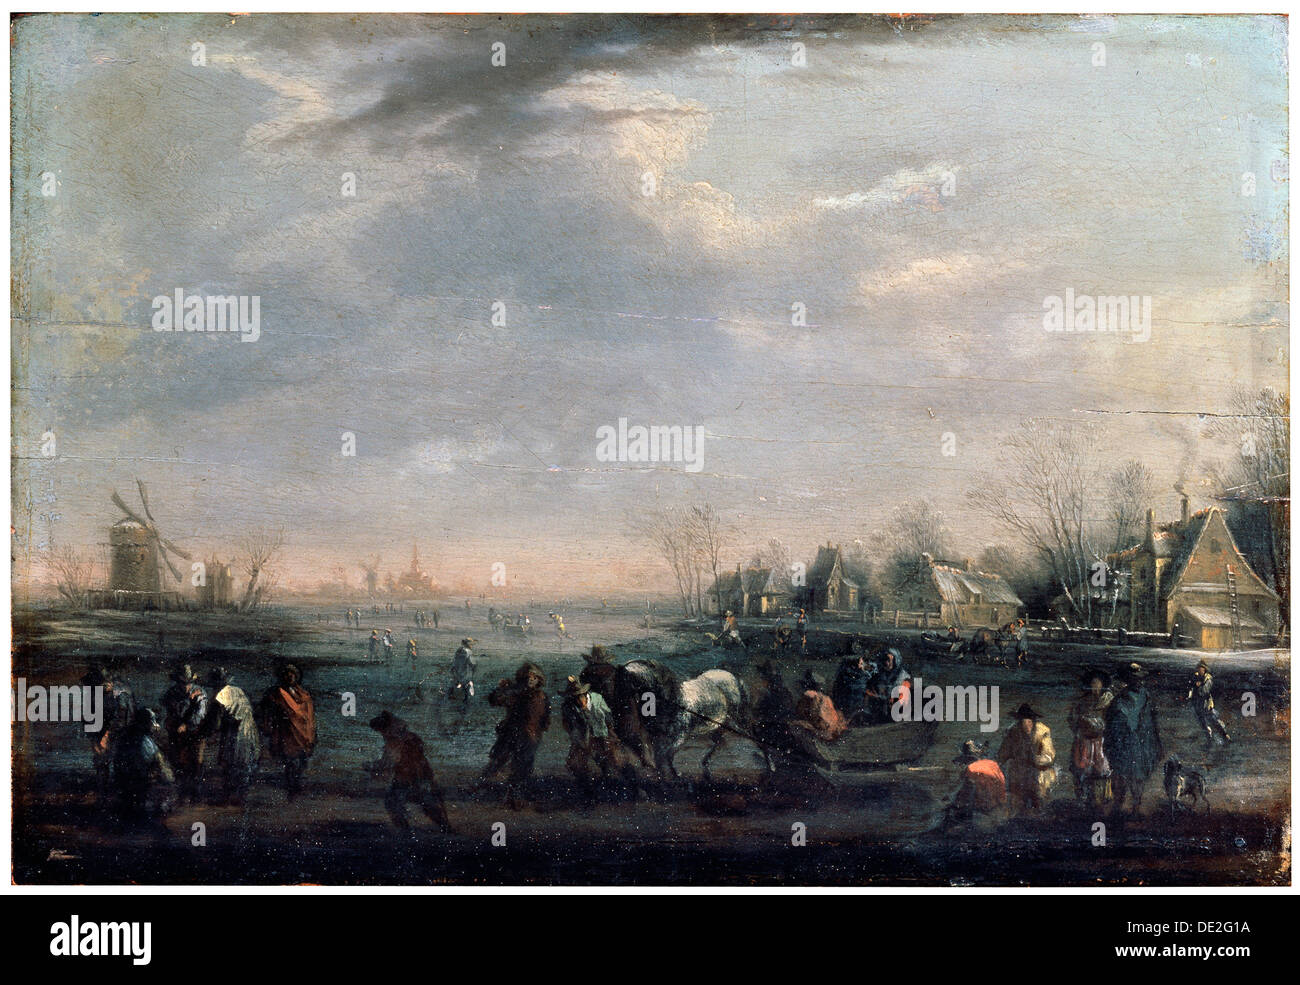 'Winter Landscape with Skaters', late 17th or early 18th century. Artist: Peeter Bout - Stock Image